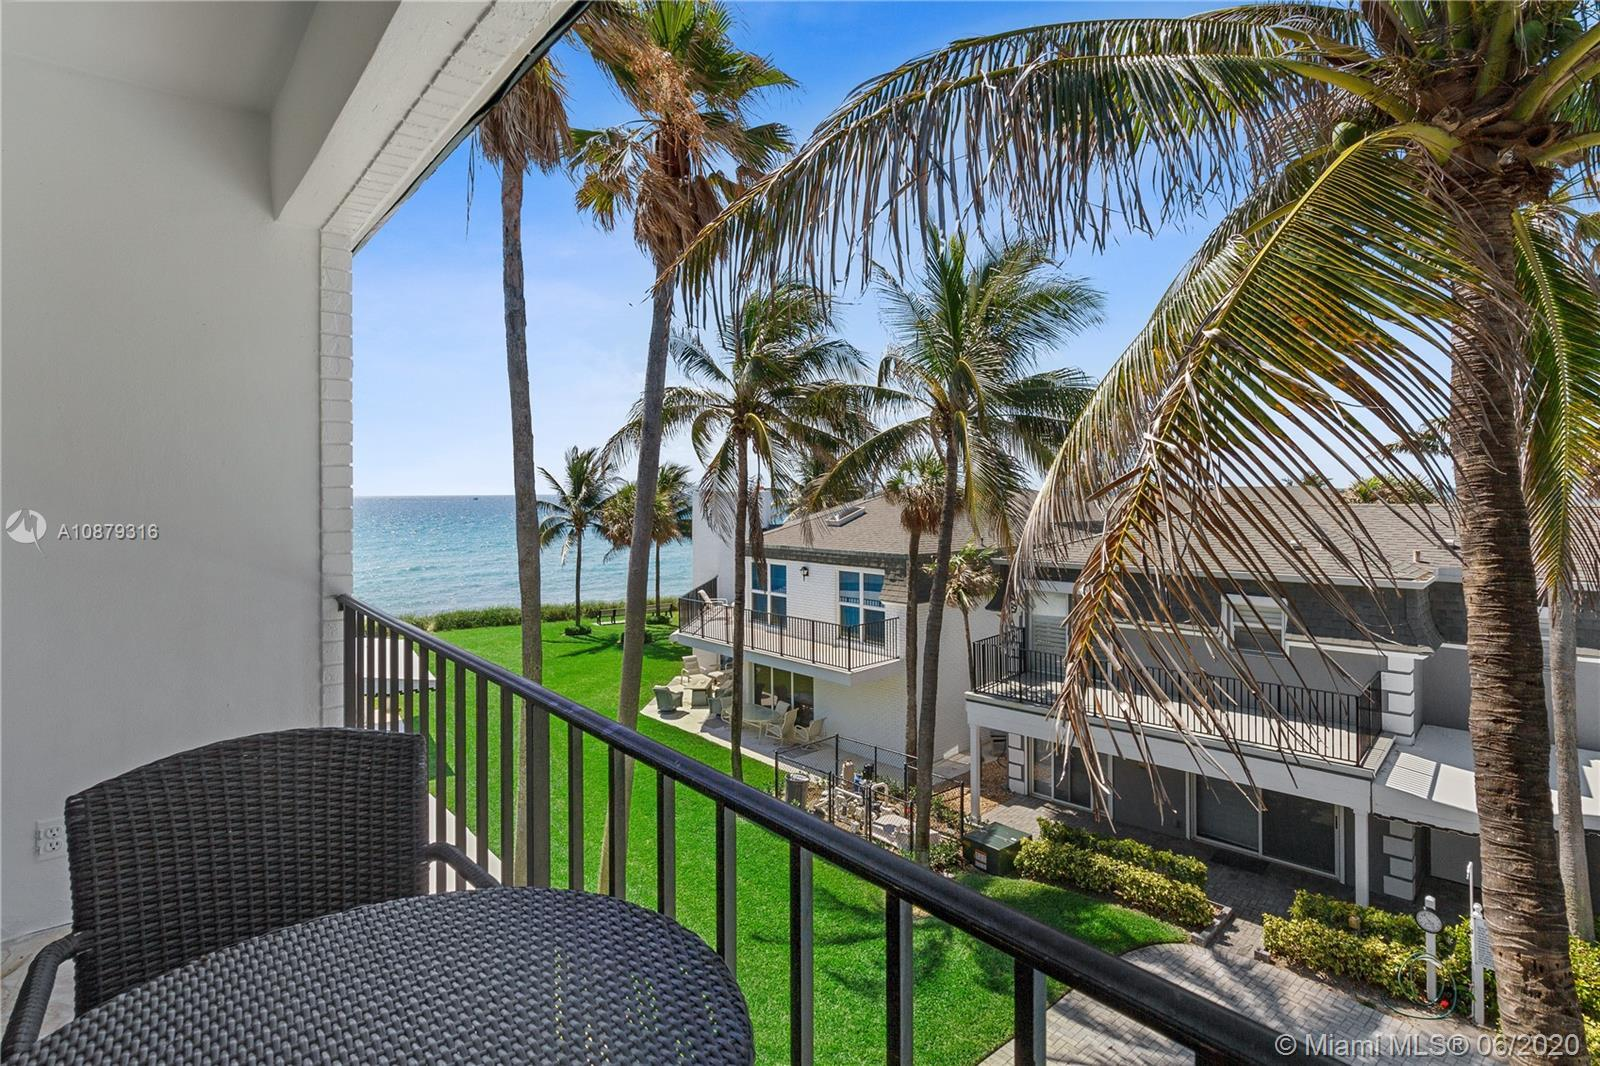 Nestled between A1A and the Atlantic Ocean, this extraordinary oceanfront villa offers the best in S